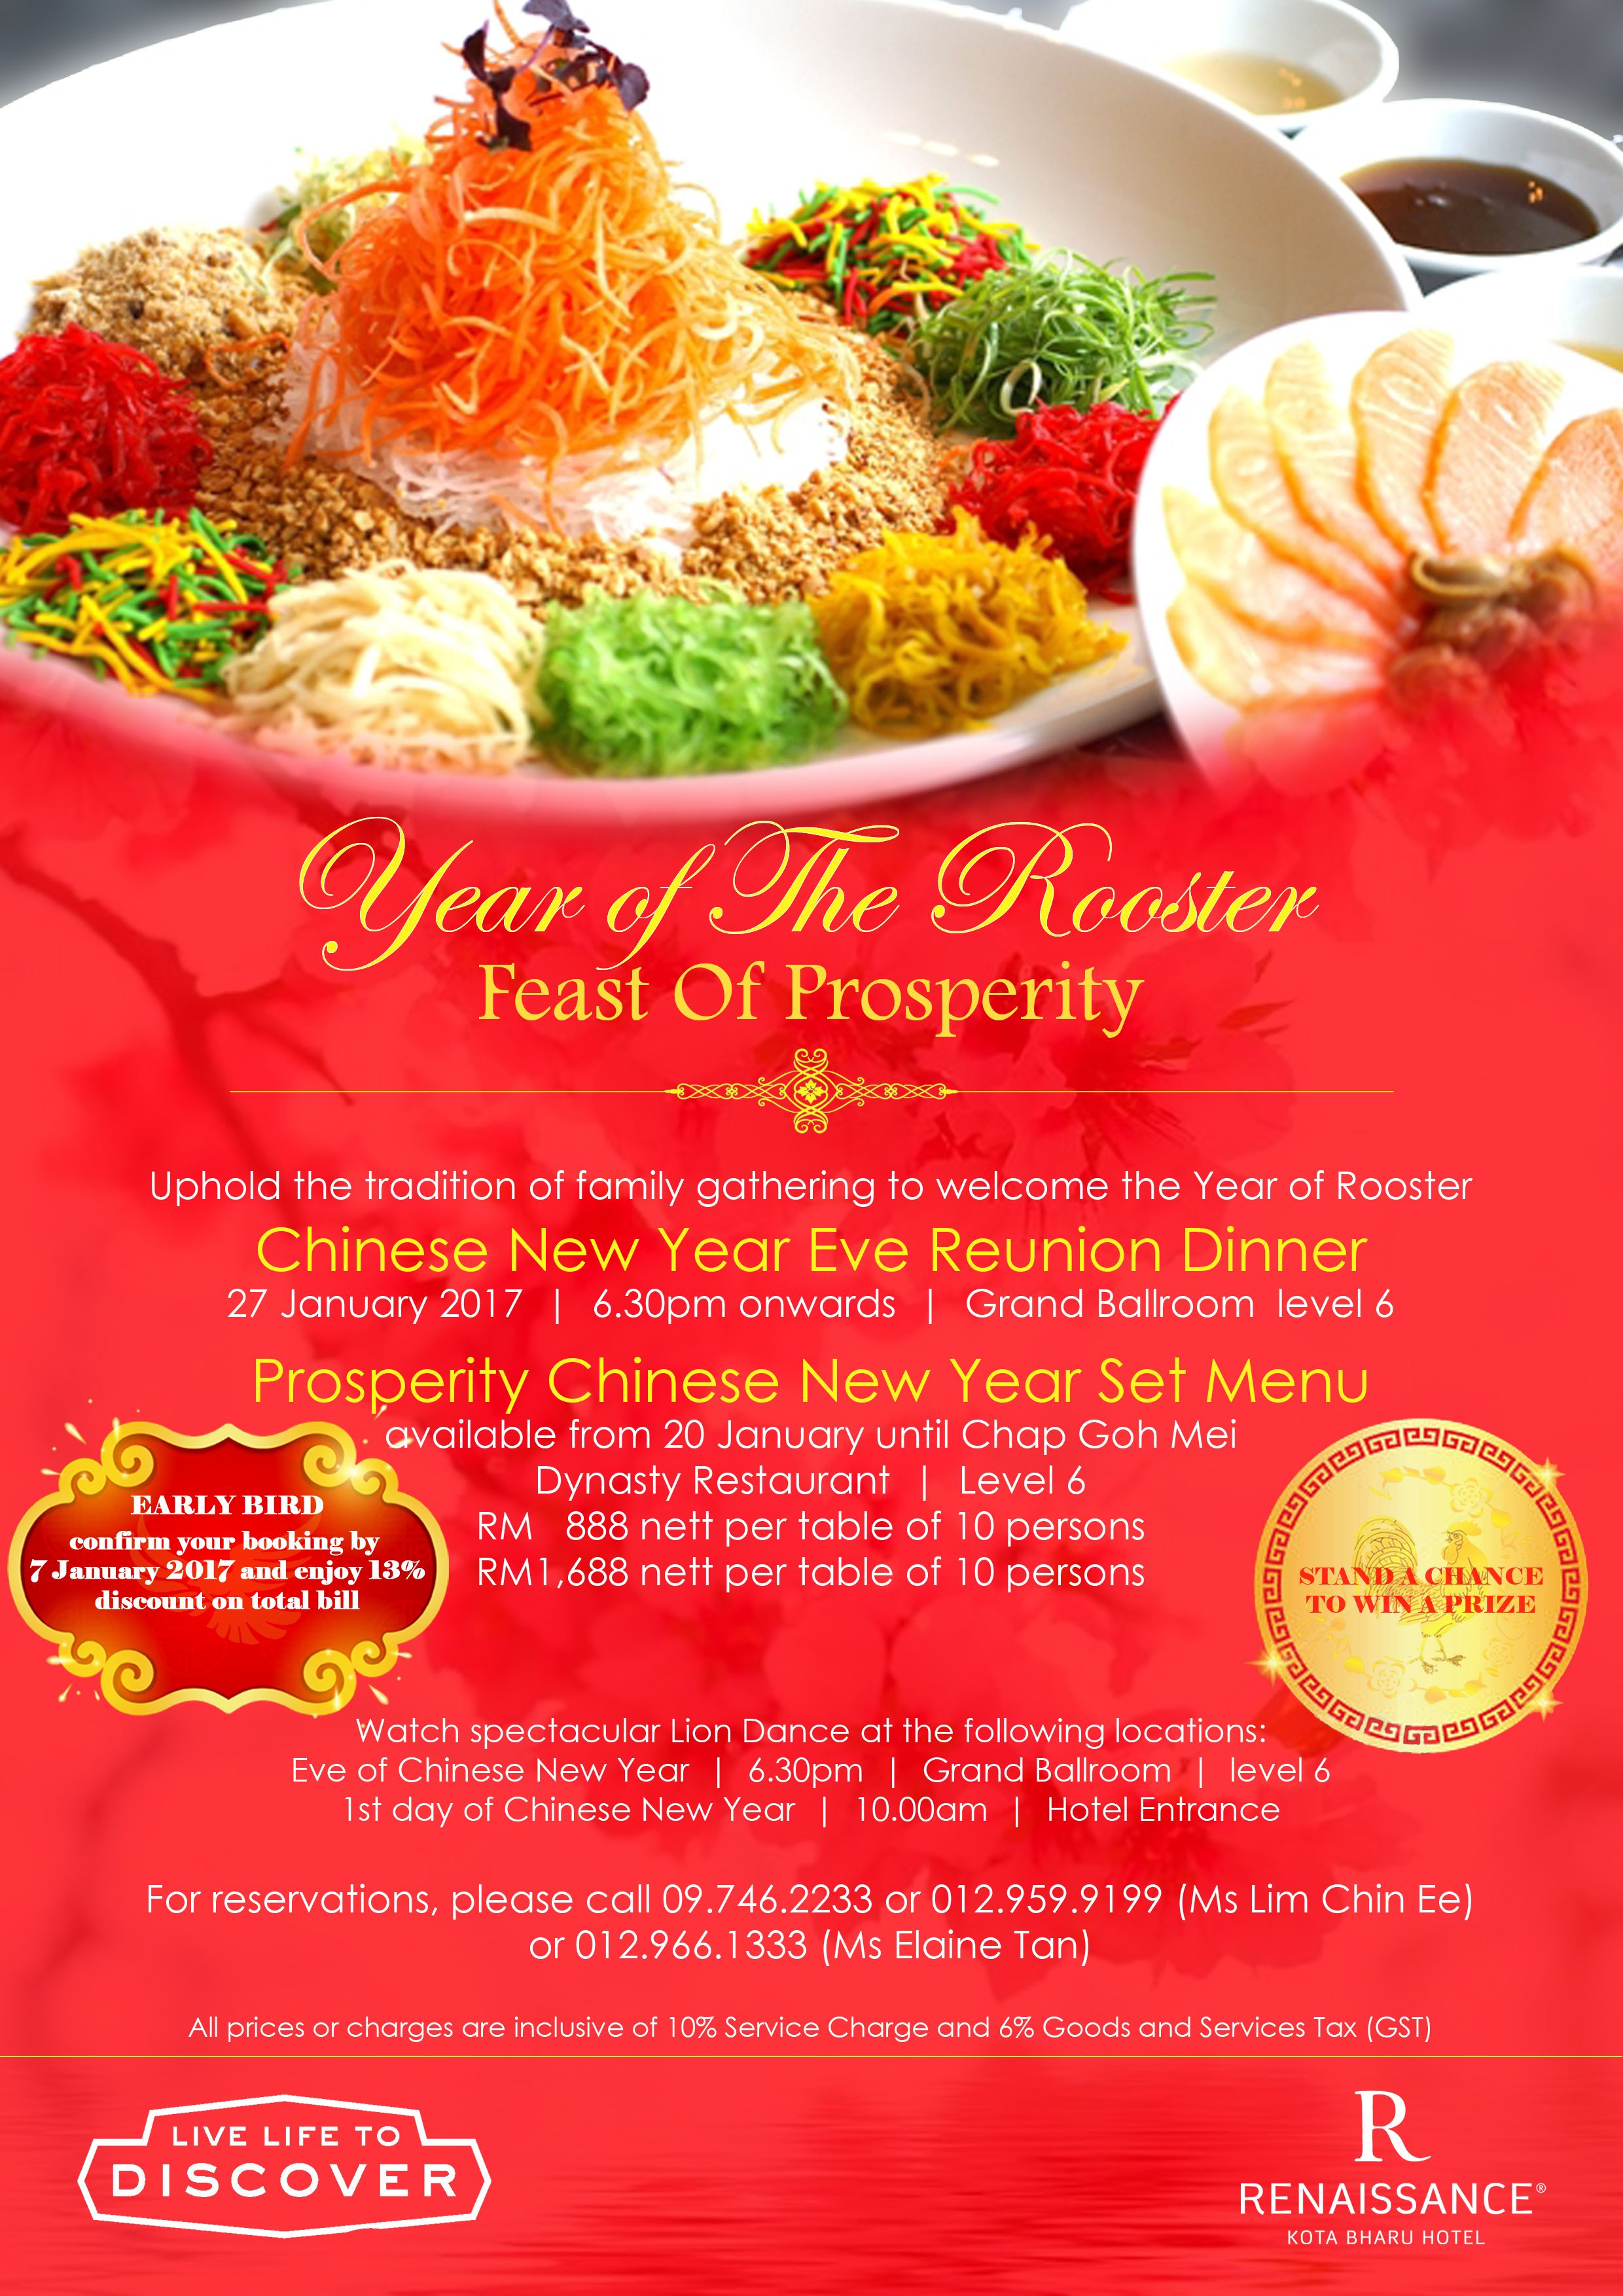 Chinese New Year Eve Reunion Dinner At Renaissance Kota Bharu Chinese New Year Eve Dinner Rooster Chinese New Year